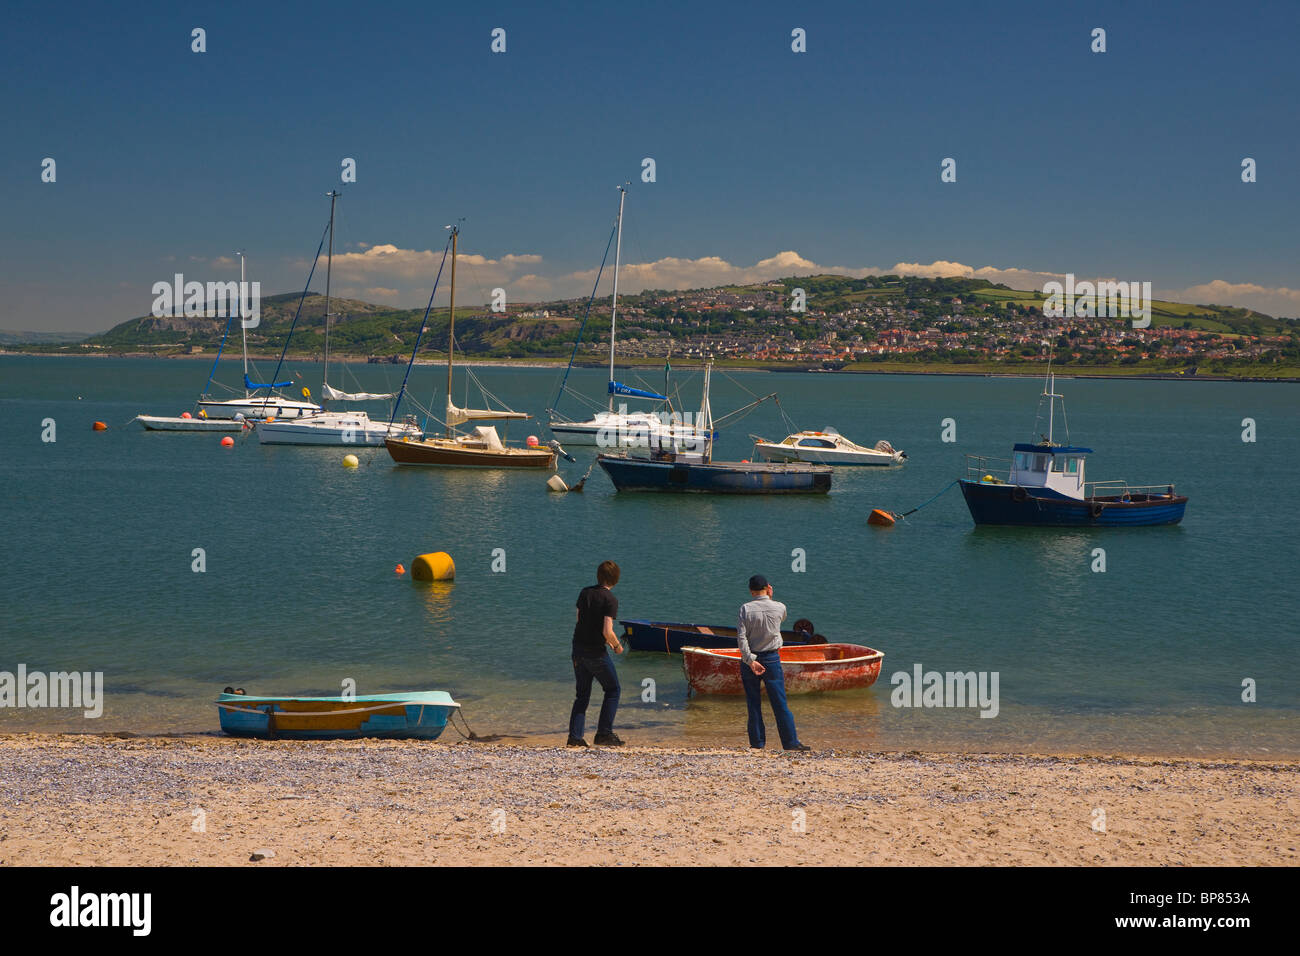 Rhos on Sea, Colwyn Bay, Beach, seafront, north Wales, UK - Stock Image